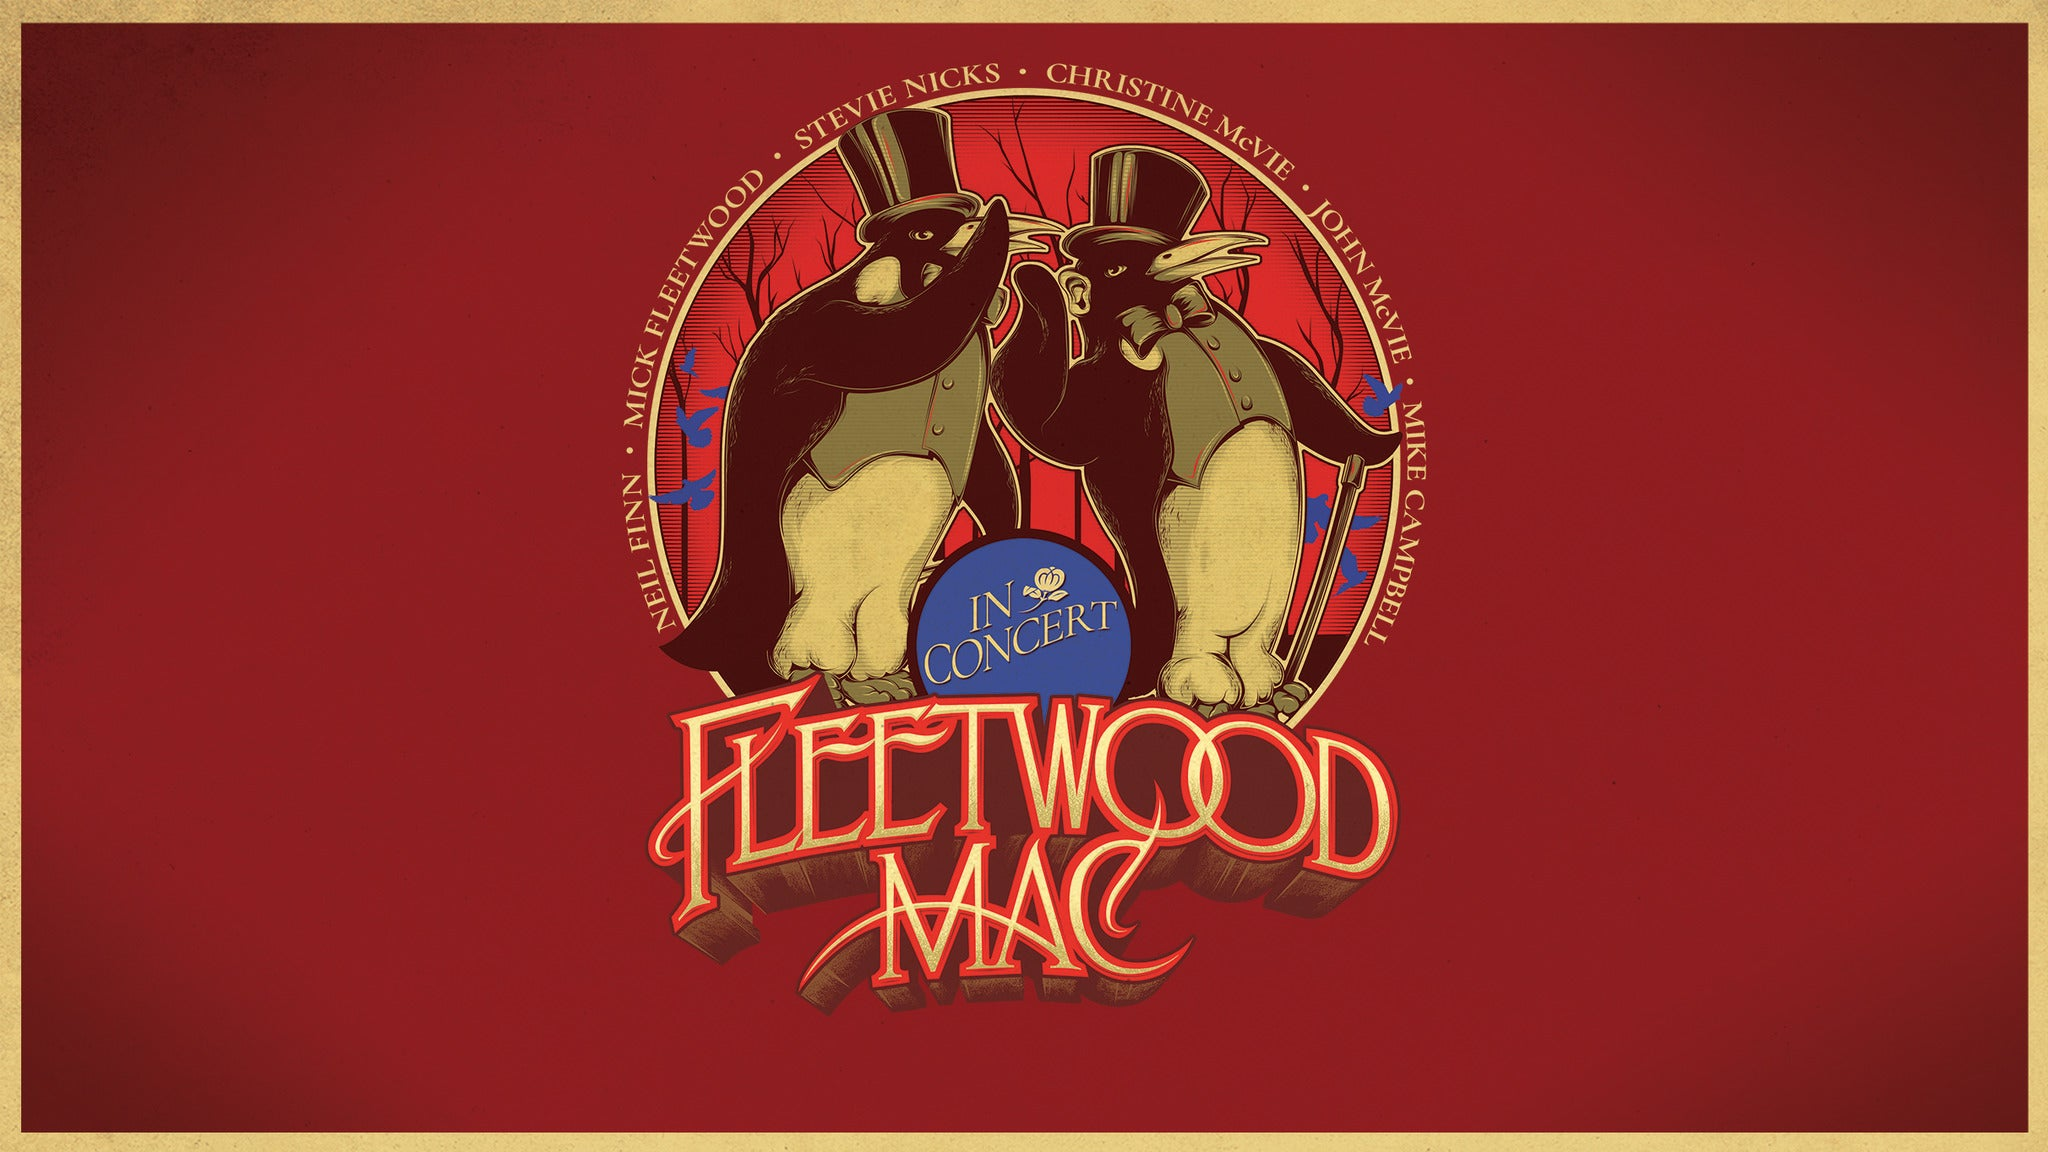 An Evening With Fleetwood Mac at KFC Yum! Center